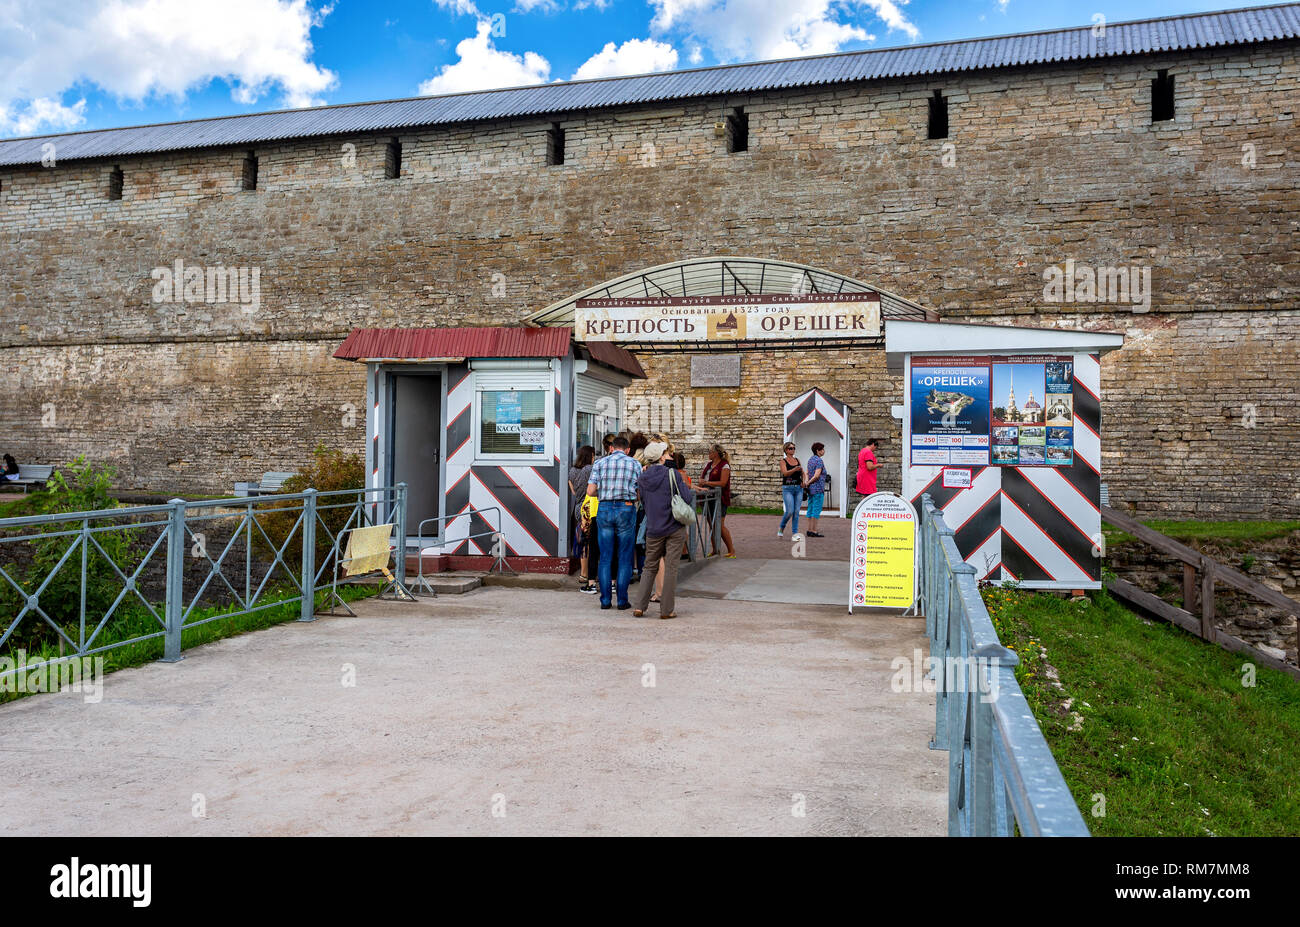 Shlisselburg, Russia - August 8, 2018: Historical medieval Oreshek fortress is an ancient Russian fortress. Shlisselburg Fortress near the St. Petersb - Stock Image